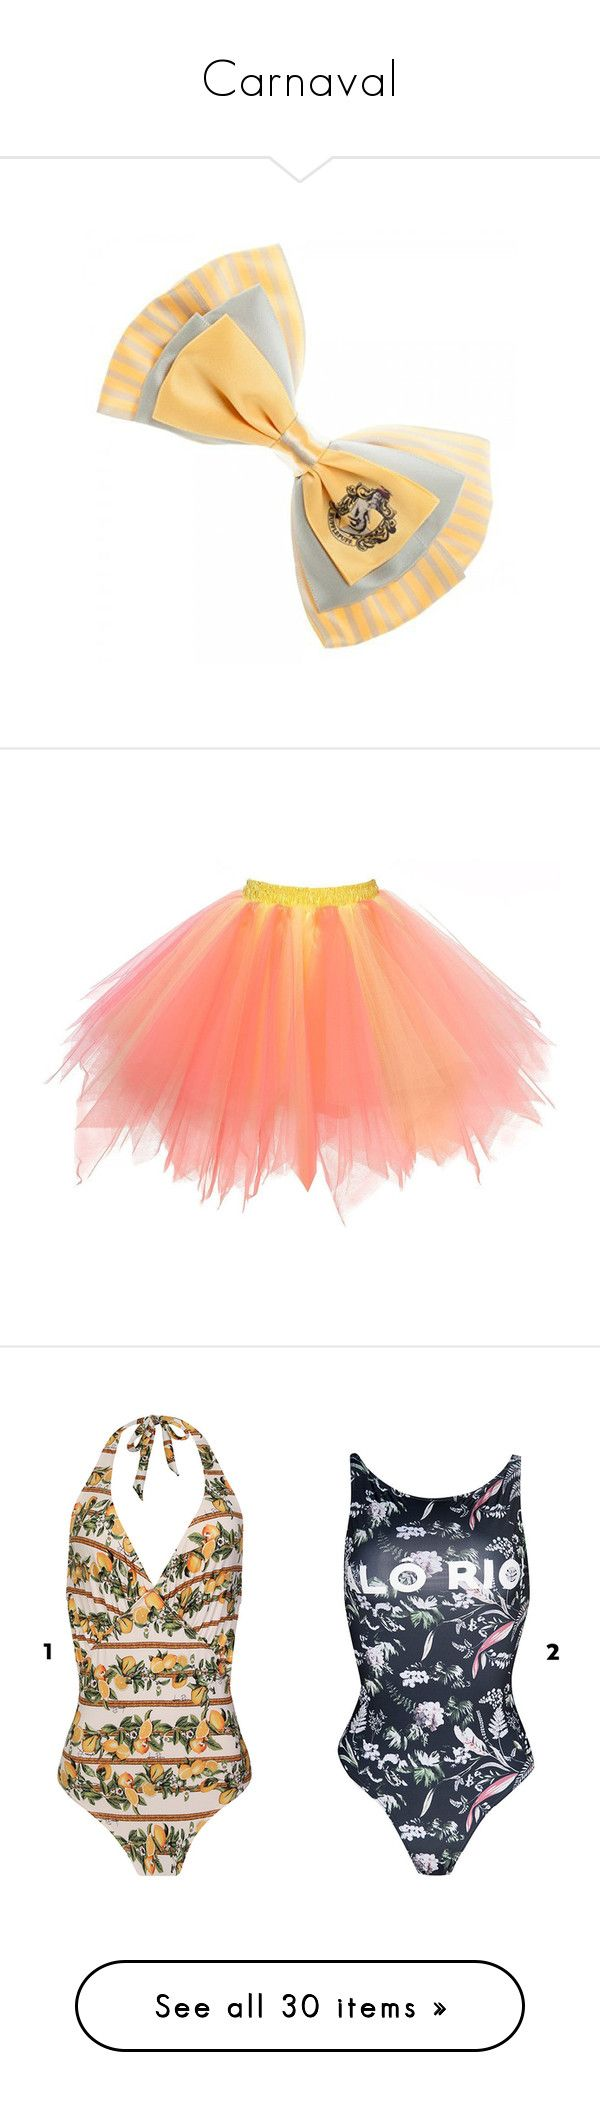 """""""Carnaval"""" by larinhacarter ❤ liked on Polyvore featuring harry potter, skirts, mini skirts, red mini skirt, red ballet tutu, red tutu, ballet tutu, red tutu skirt, accessories and hair accessories"""